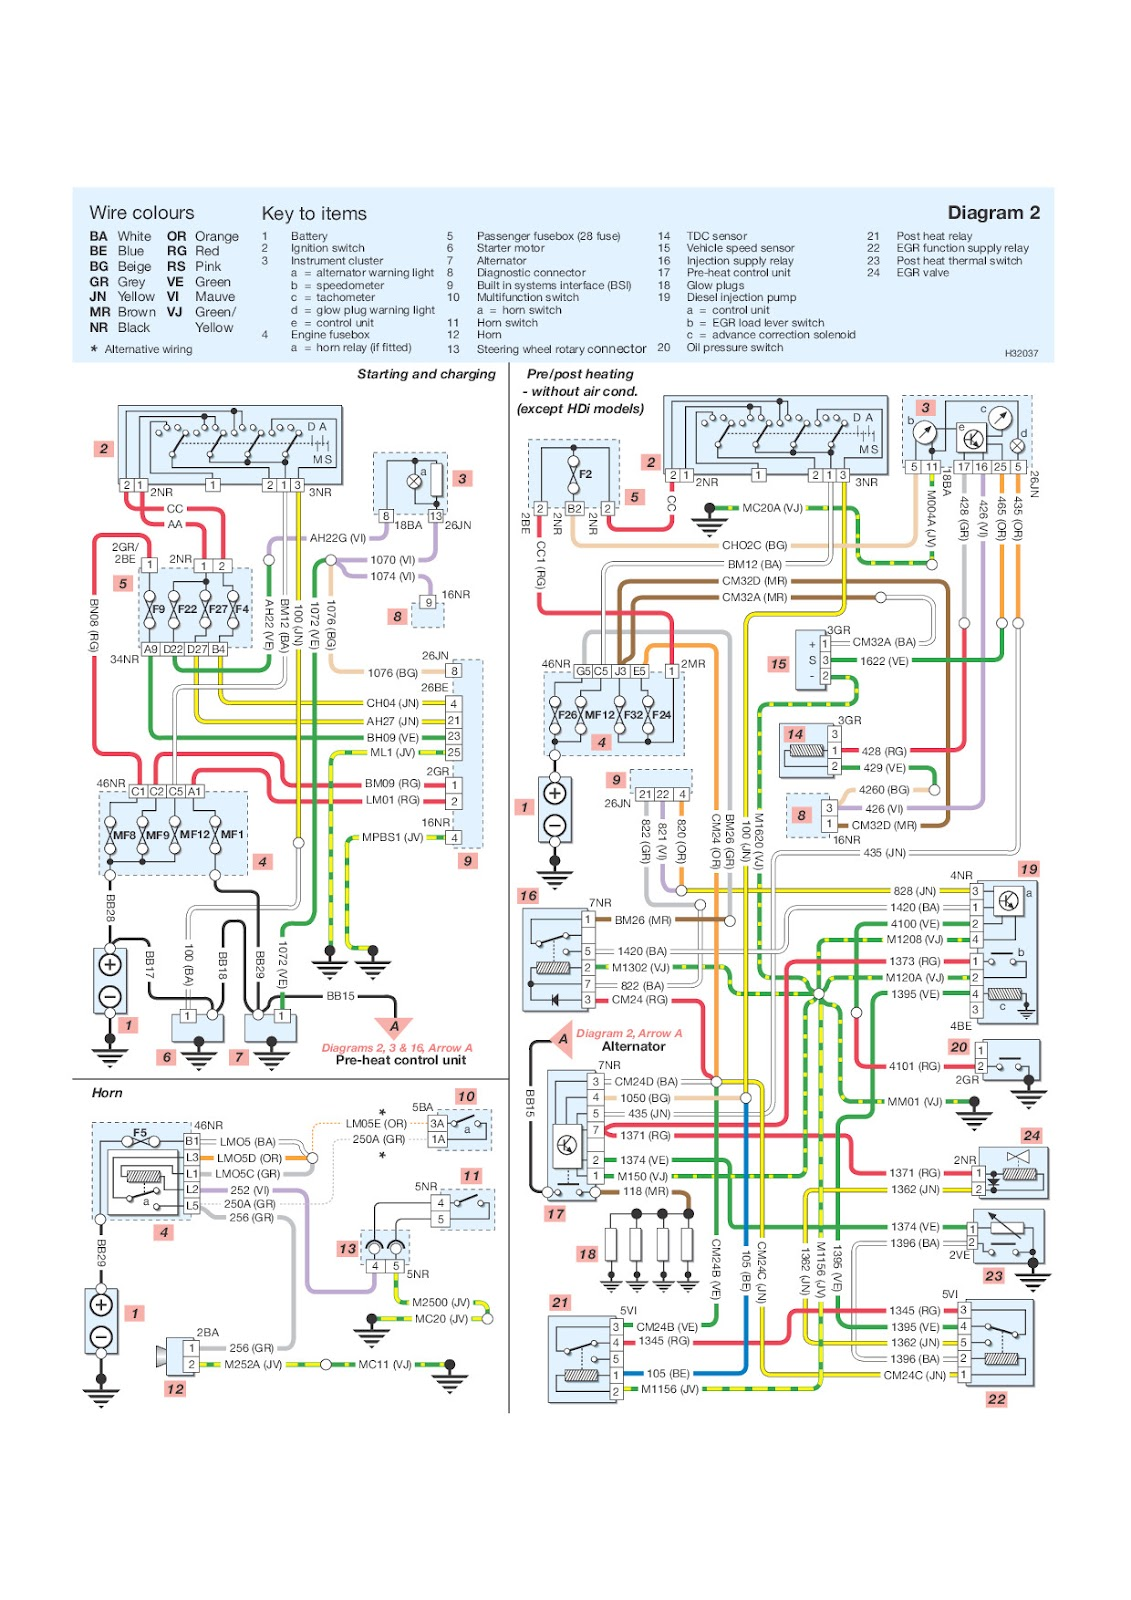 Stereo Wiring Diagram Peugeot 206 - Wiring Diagram Online on peugeot 307 owner's manual, peugeot 307 fuse diagram, peugeot 508 wiring diagram, peugeot 505 wiring diagram,